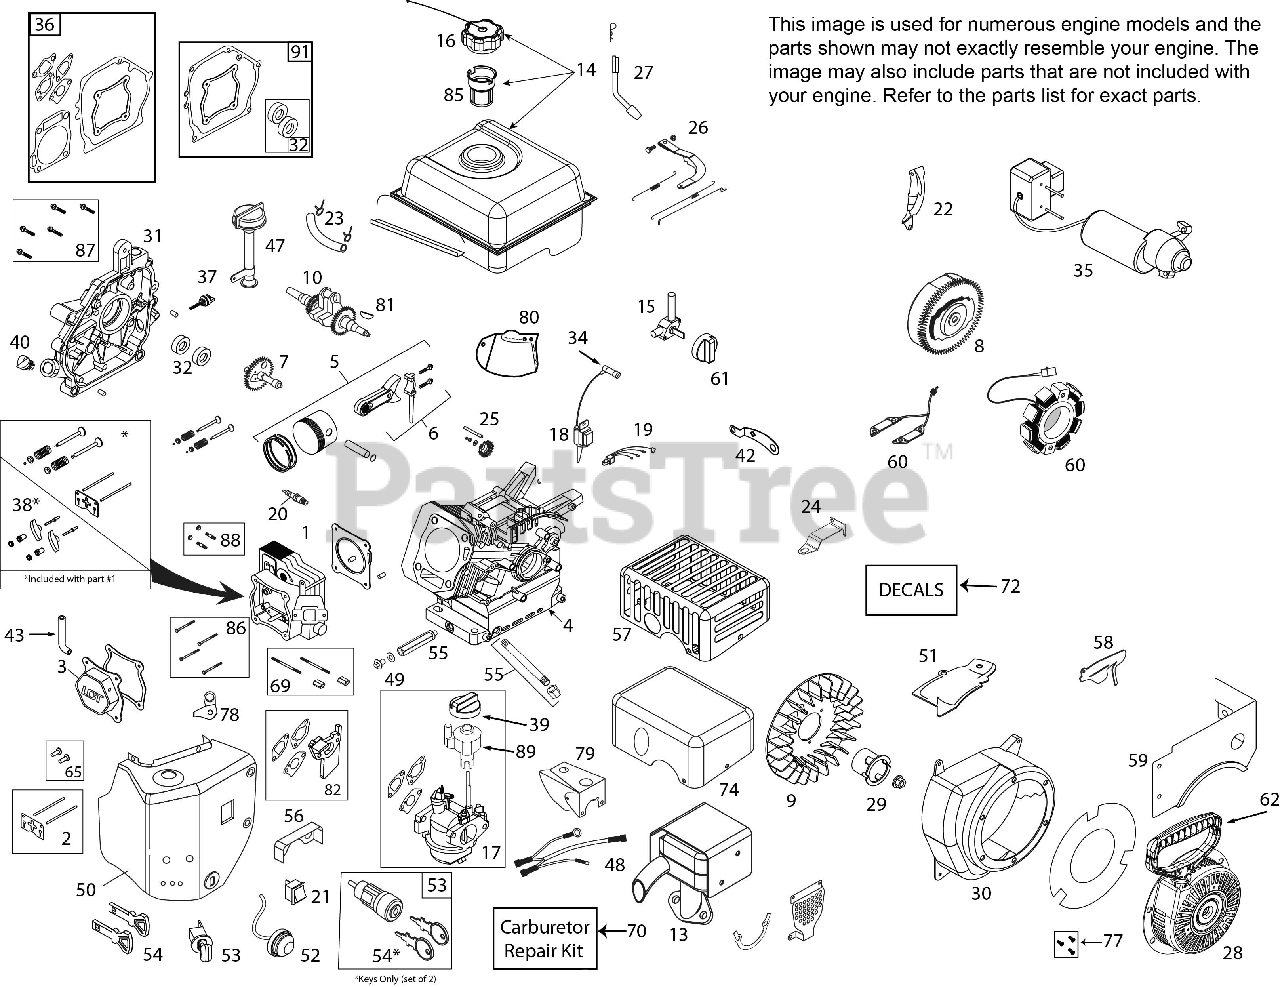 Ariens Parts on the Engine 08201239 Diagram for 920025